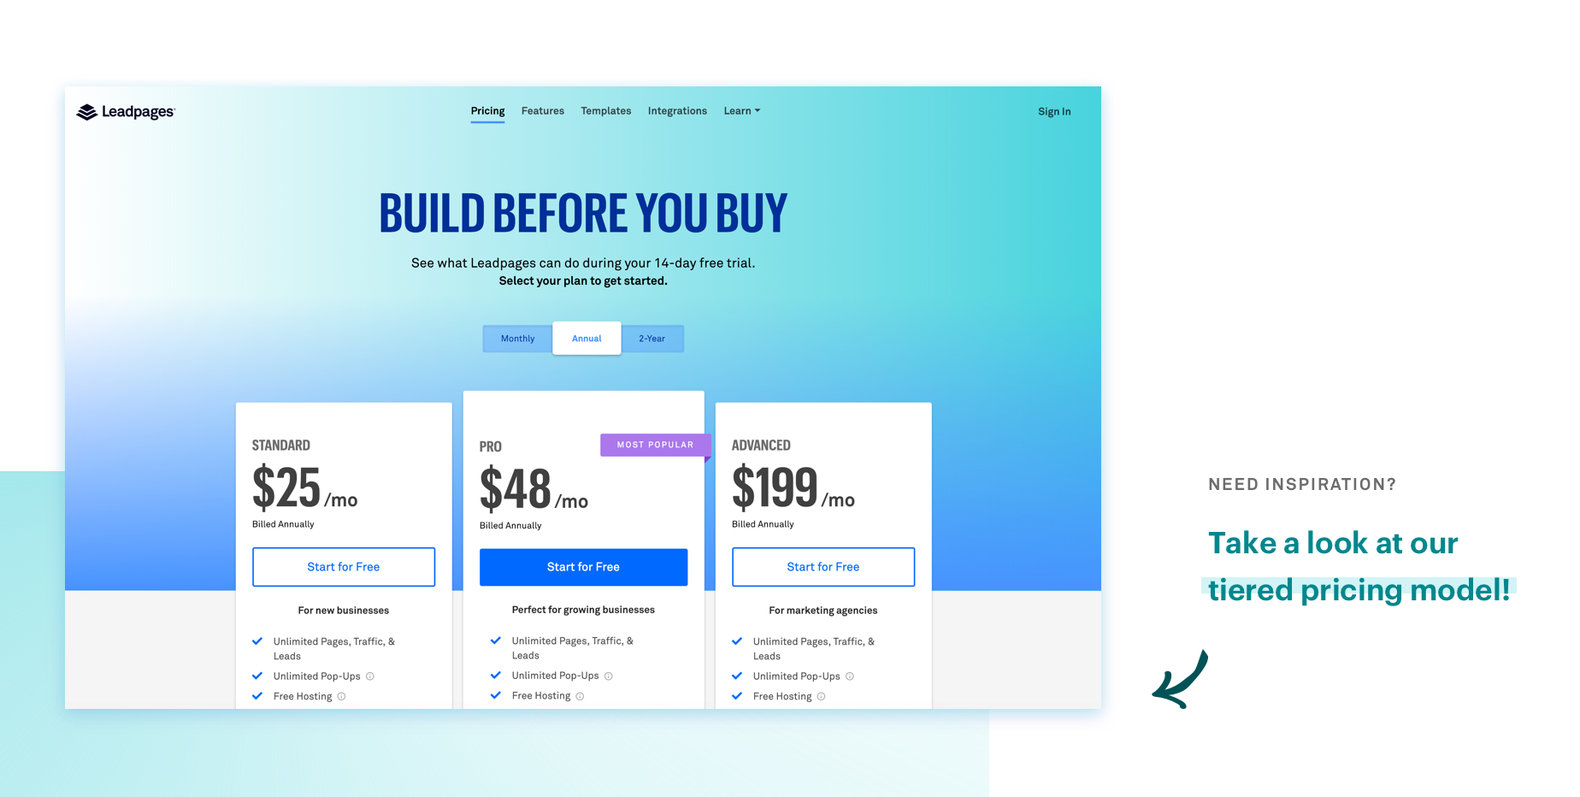 Leadpages tiered pricing model